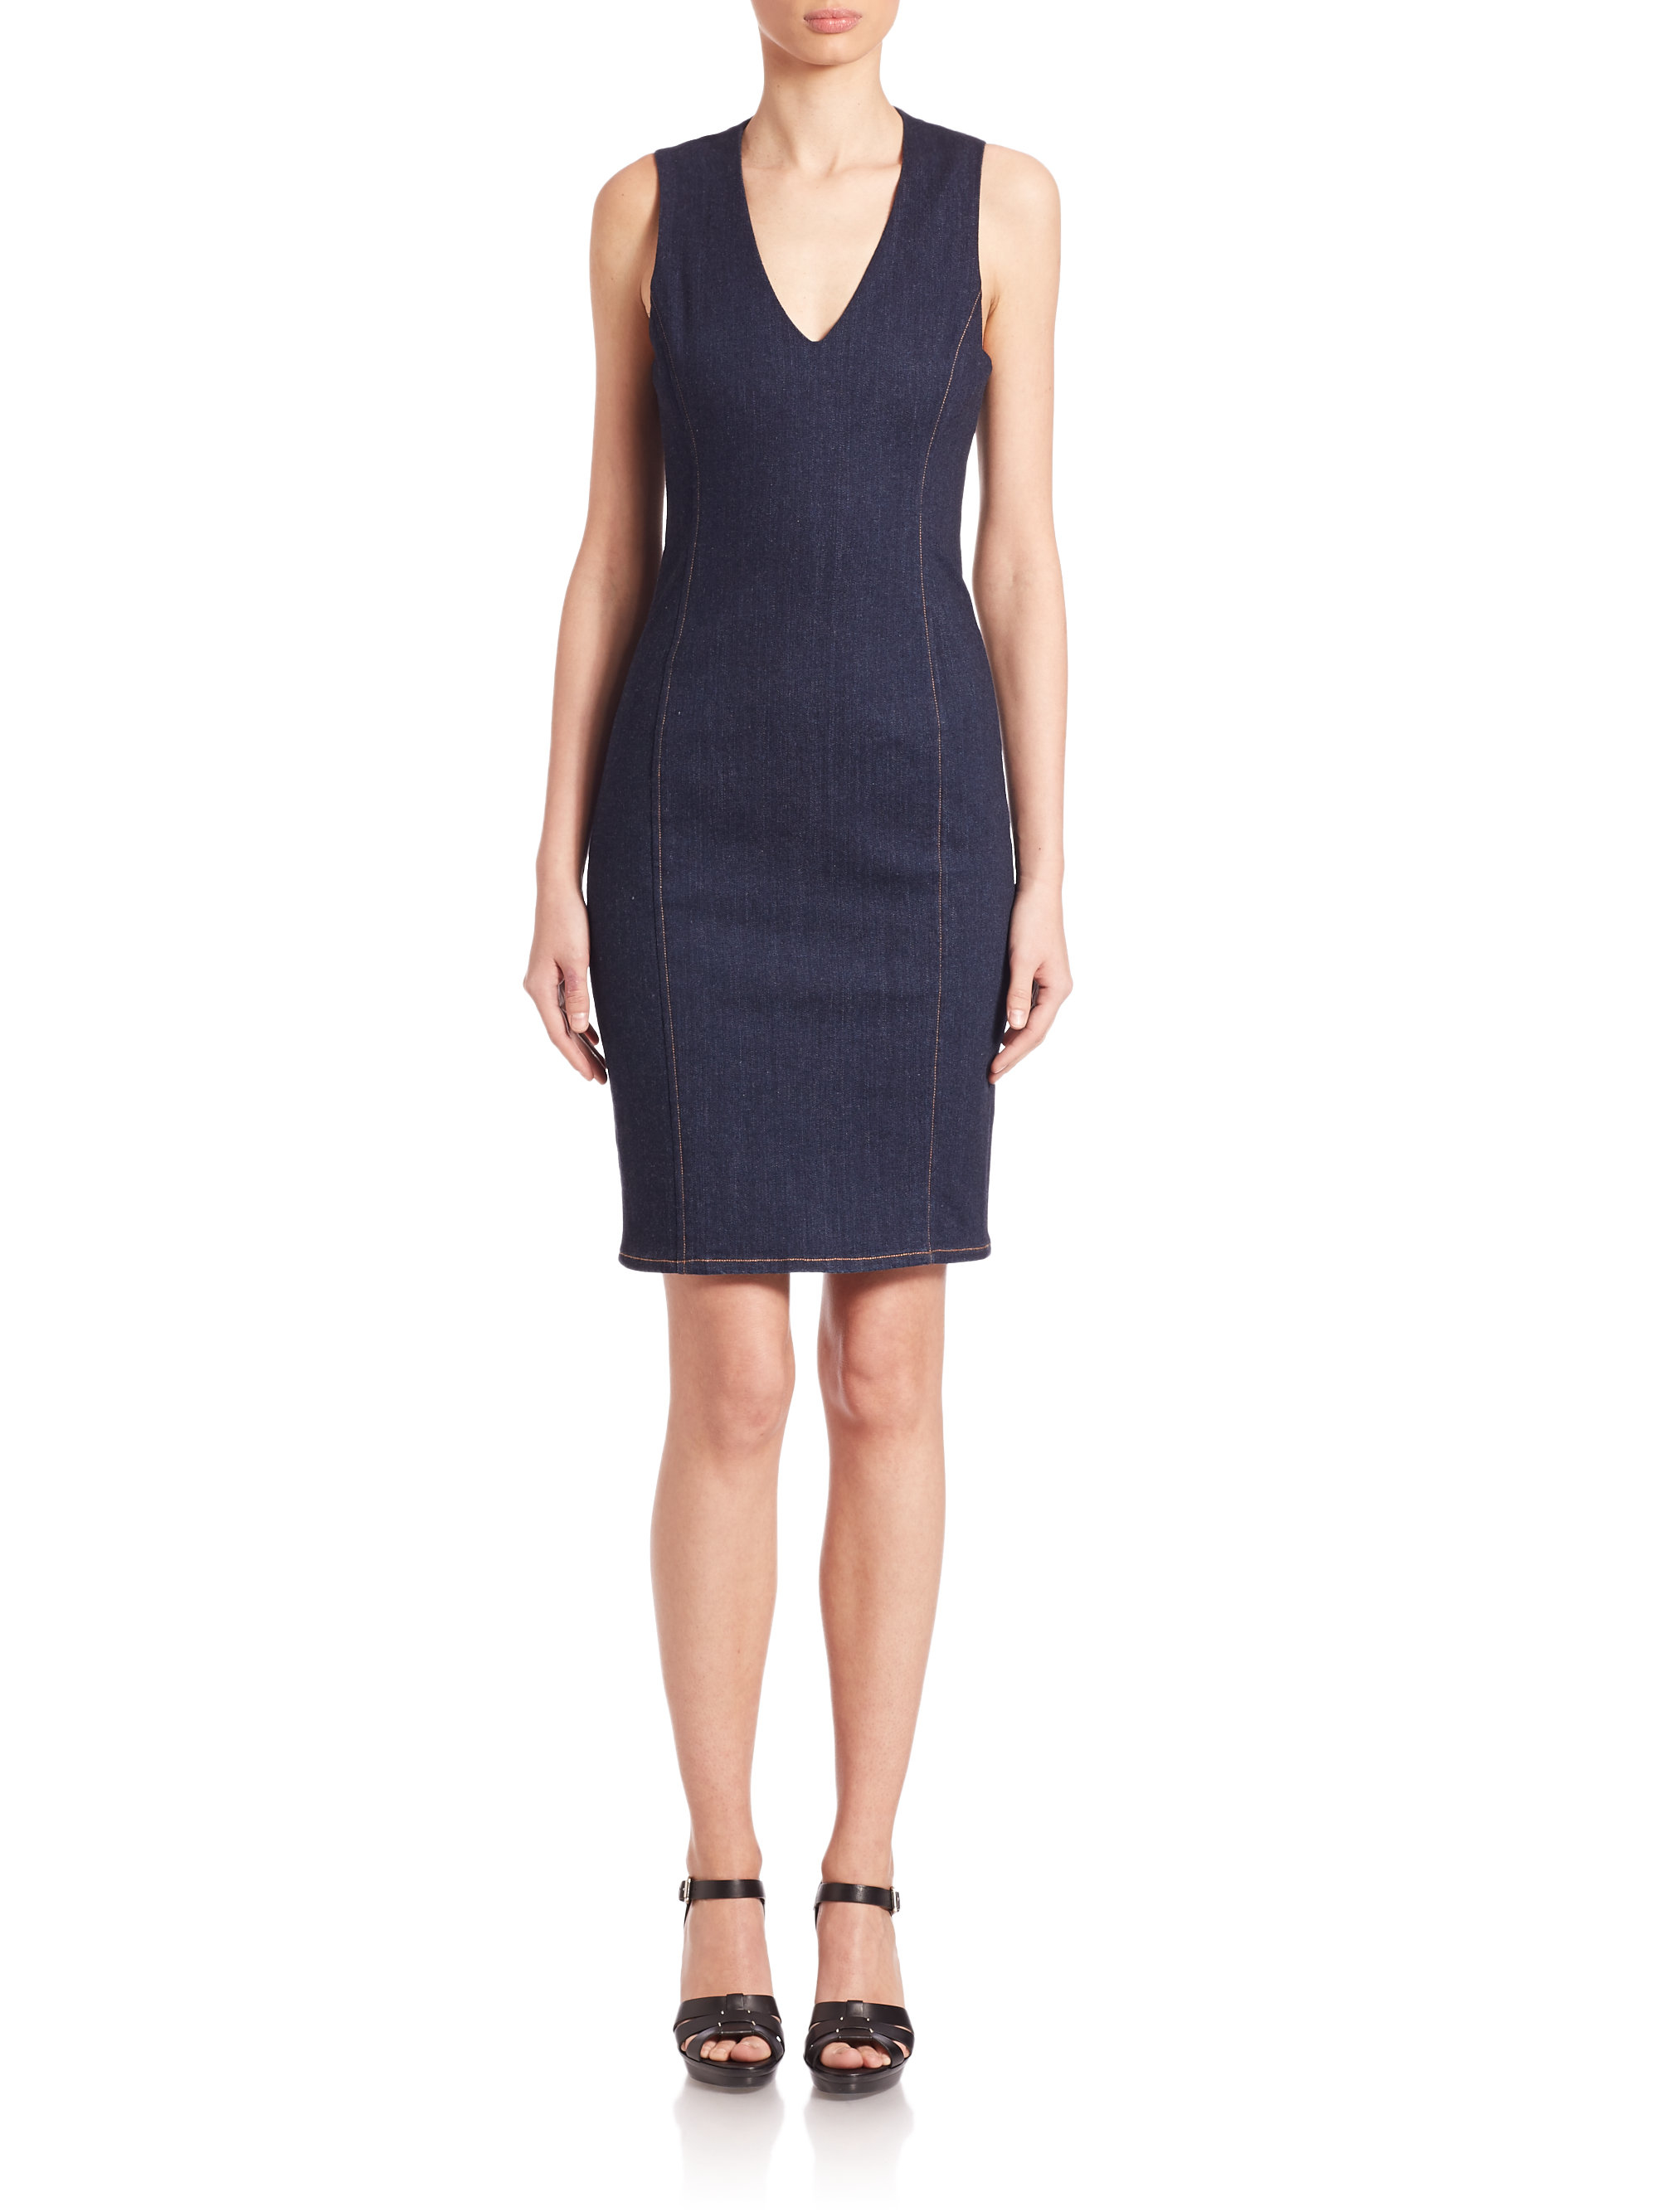 Polo ralph lauren Denim Sheath Dress in Blue | Lyst